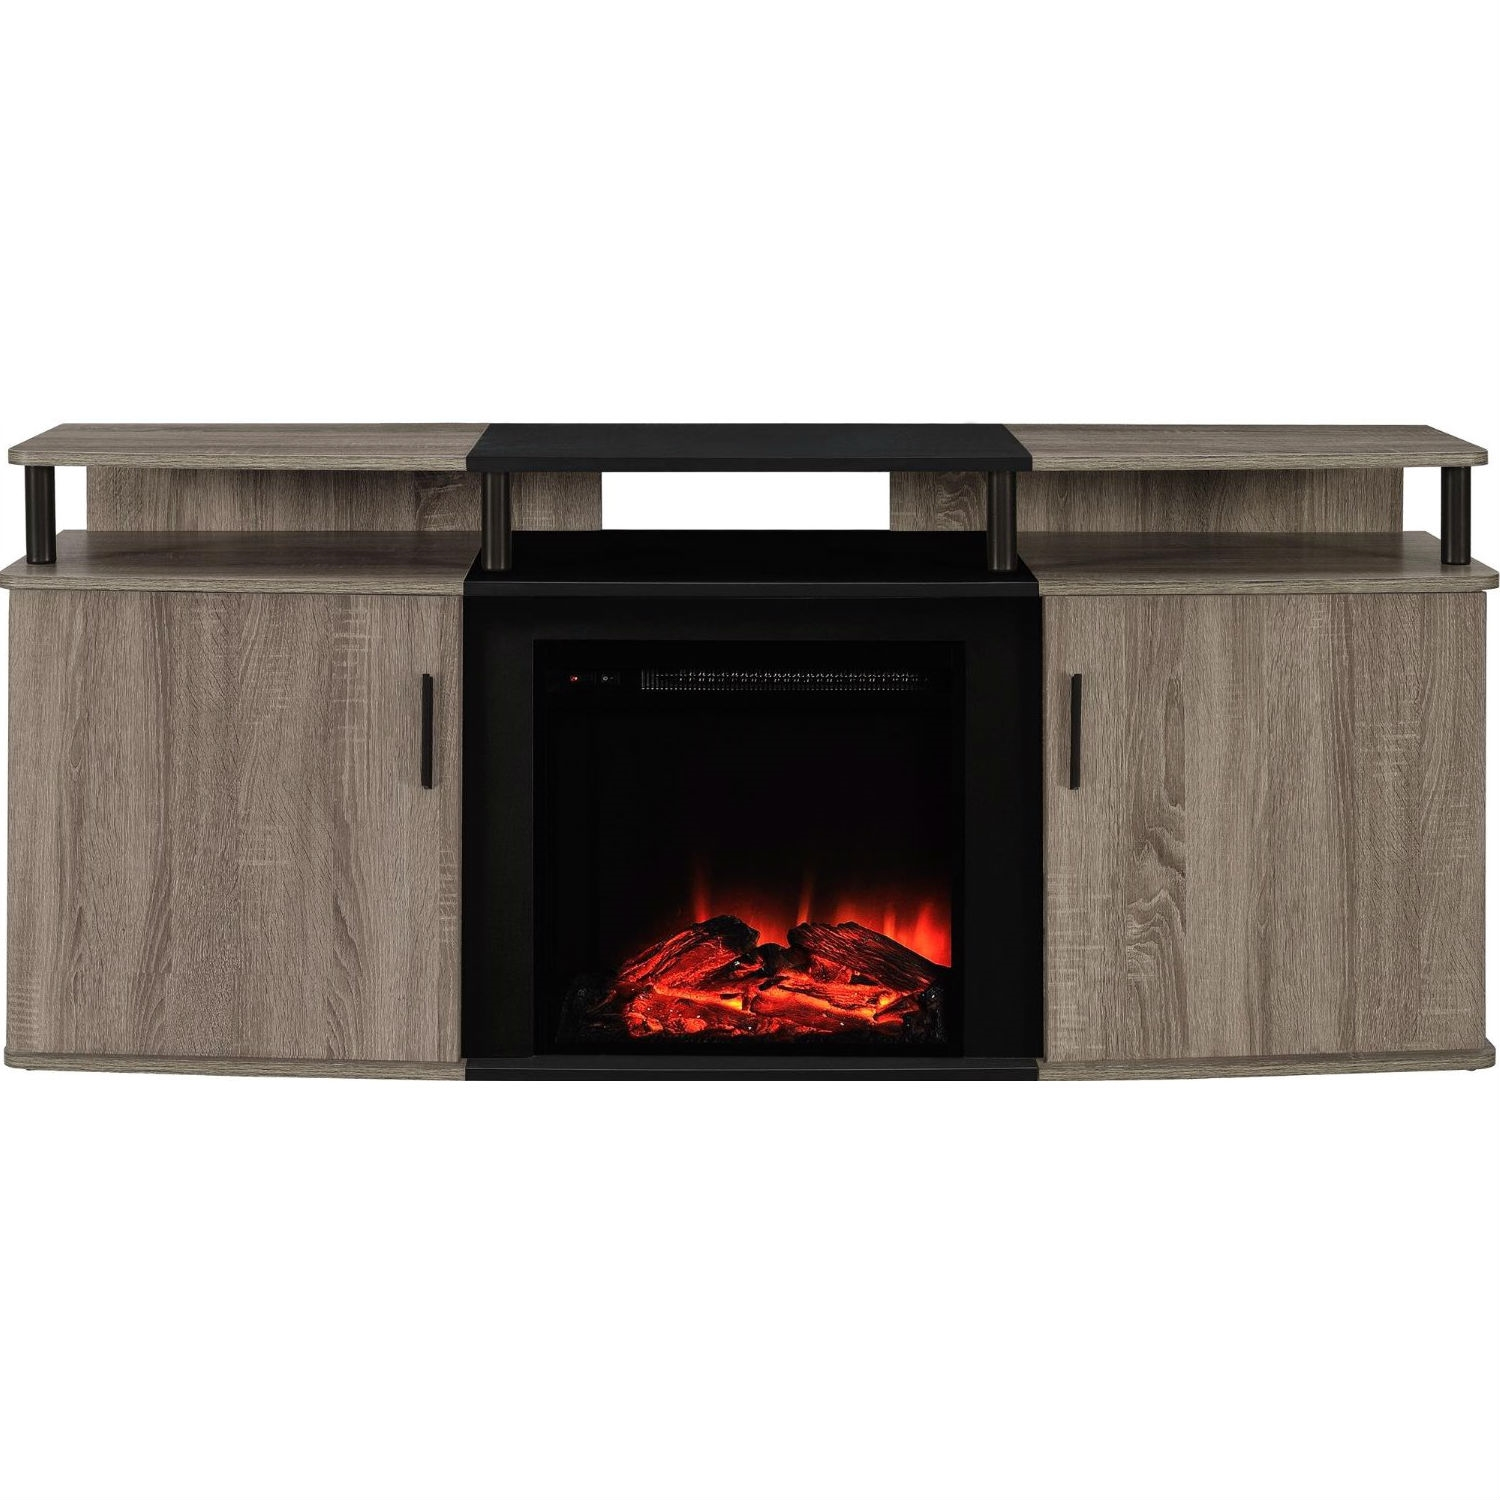 Sonoma Oak Black Electric Fireplace TV Stand Accommodates up to